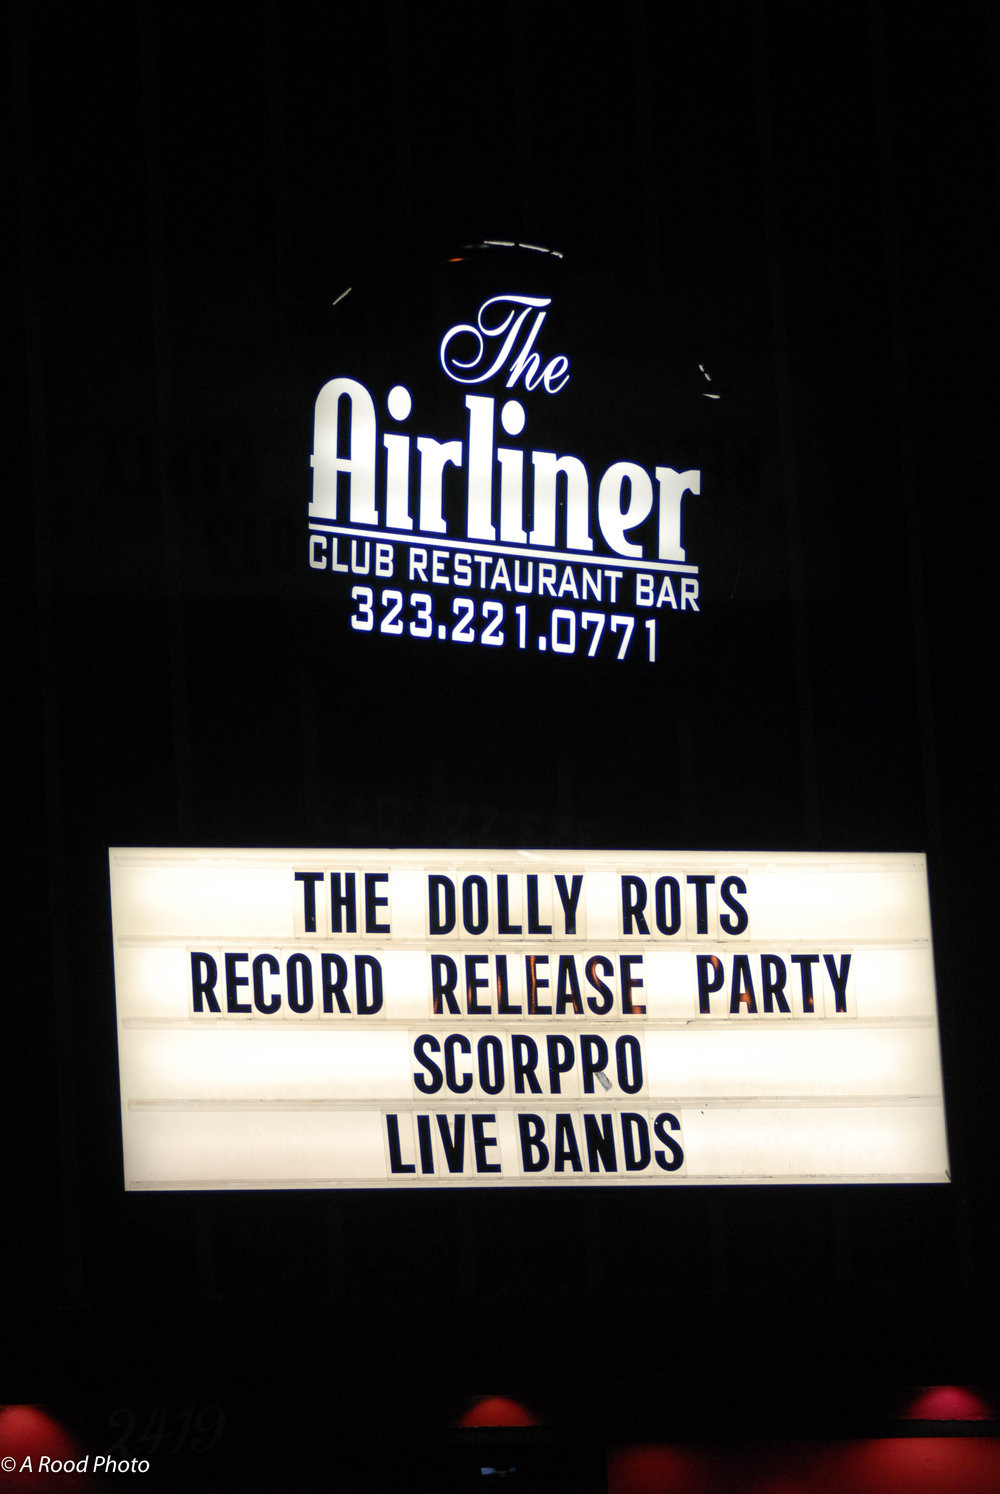 The Dollyrots 3-24-2008